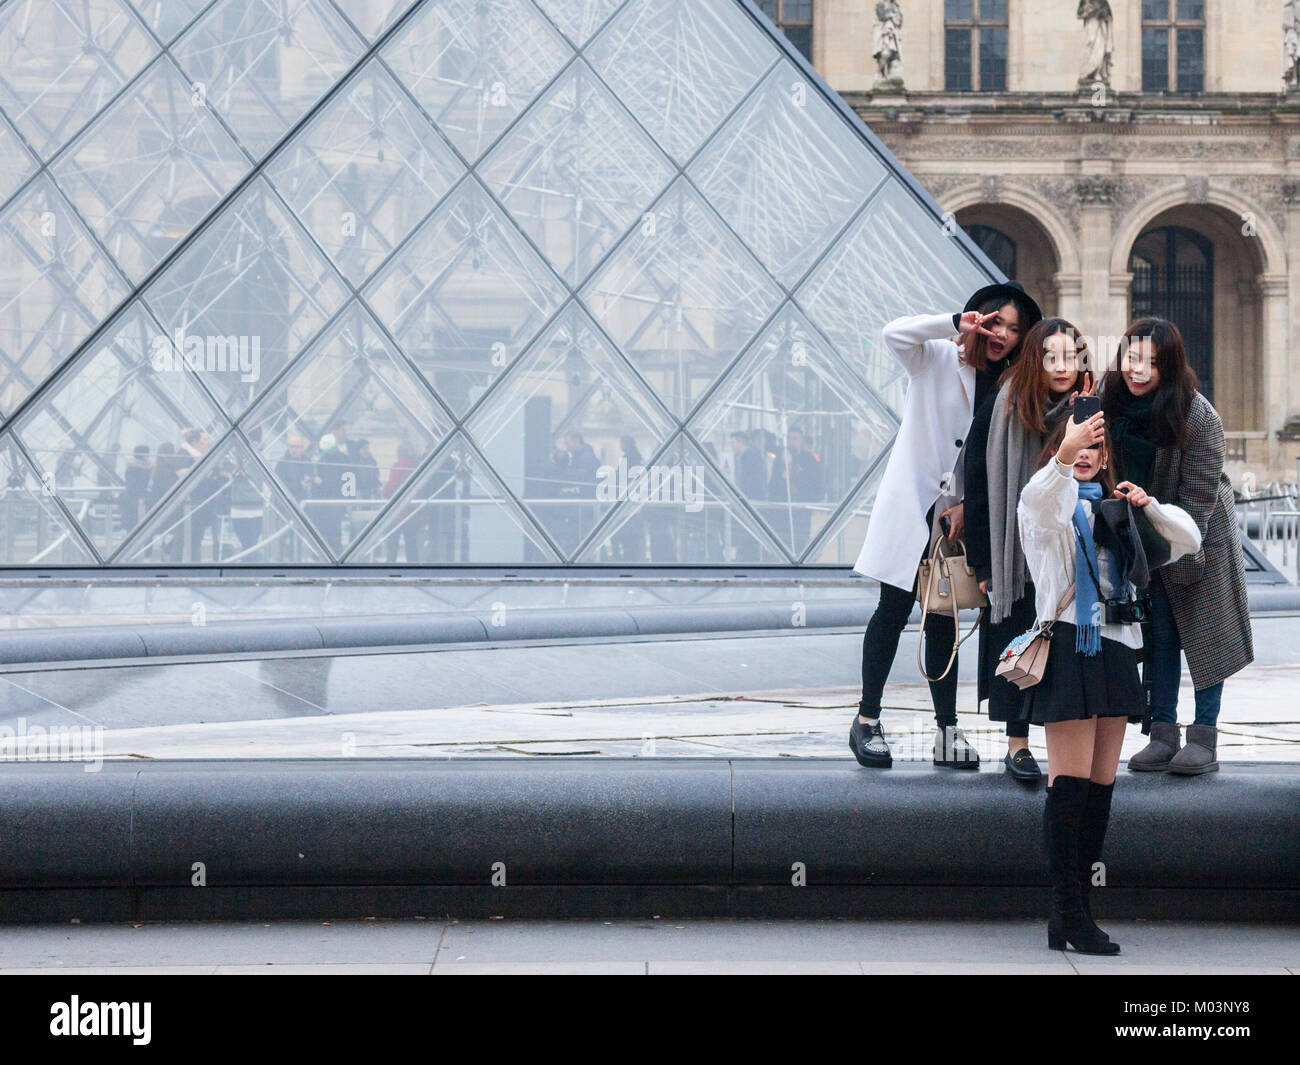 PARIS, FRANCE - DECEMBER 20, 2017: Chinese tourists taking selfie photos in front of the Louvre Pyramid. Louvre - Stock Image